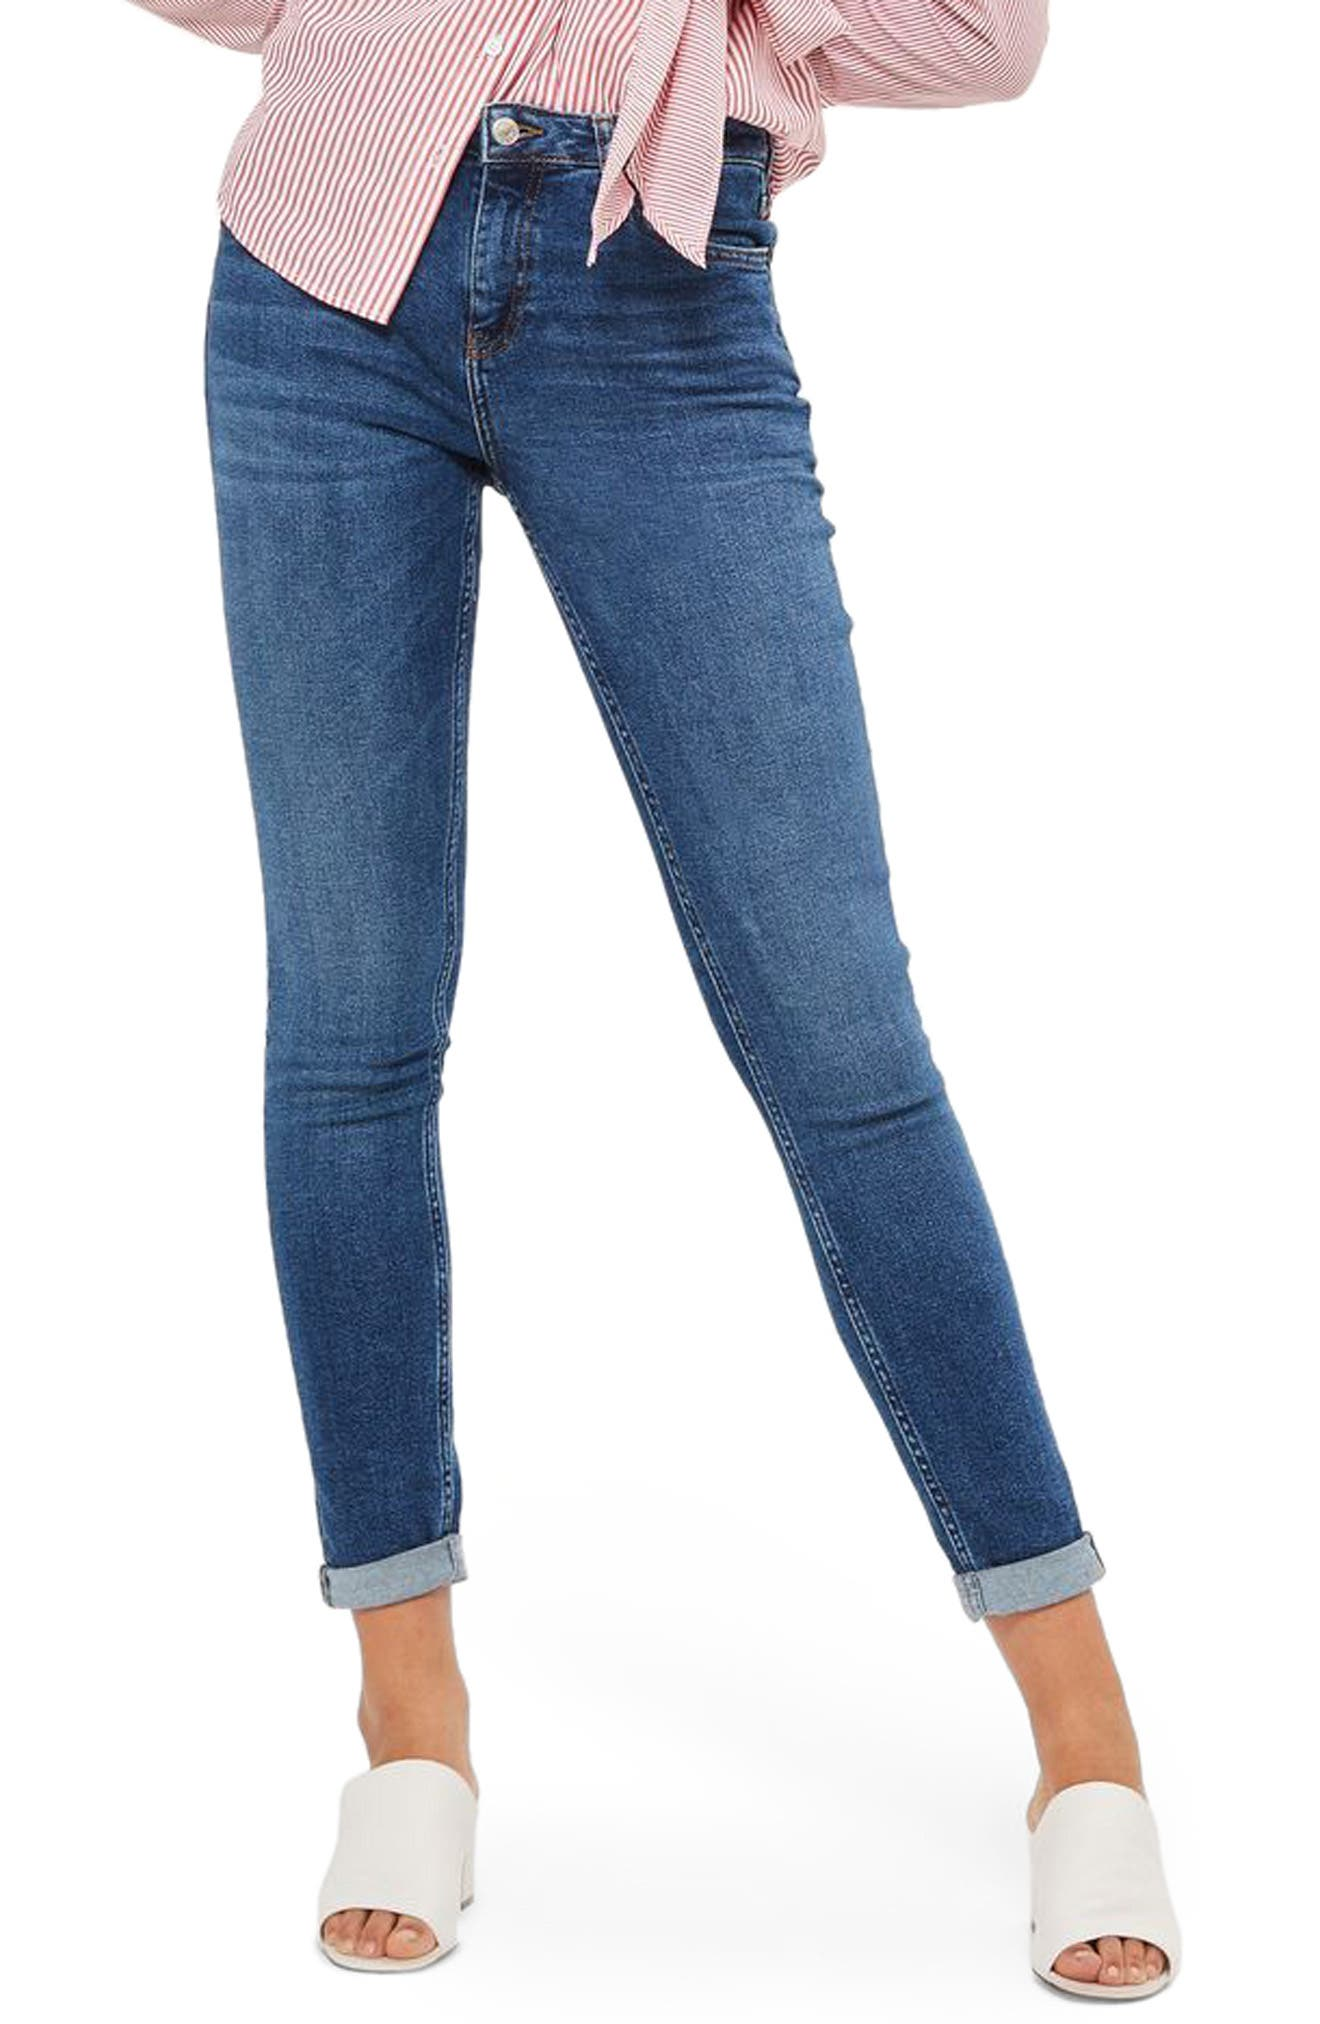 Lucas Relaxed Fit Jeans,                         Main,                         color, Mid Denim